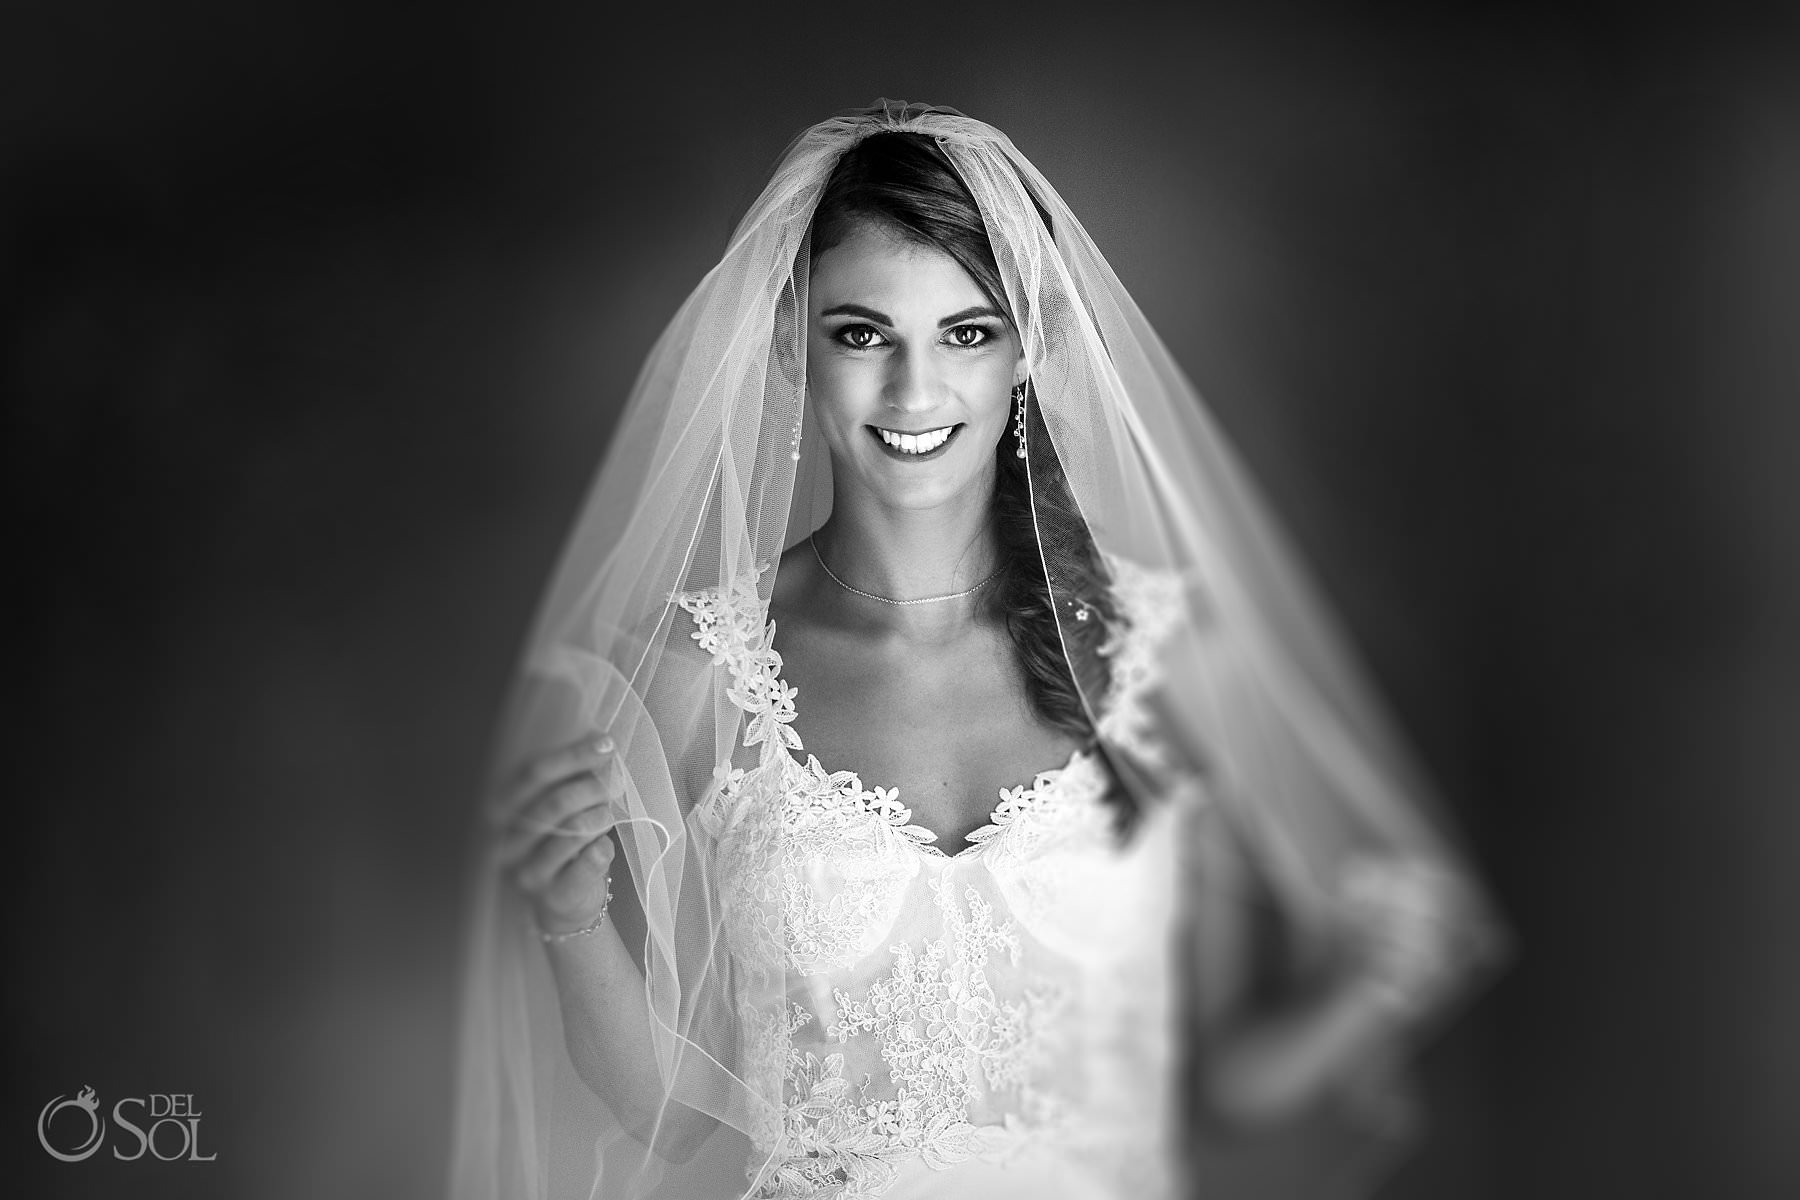 Beautiful Bride black and white photo by Sol Tamargo